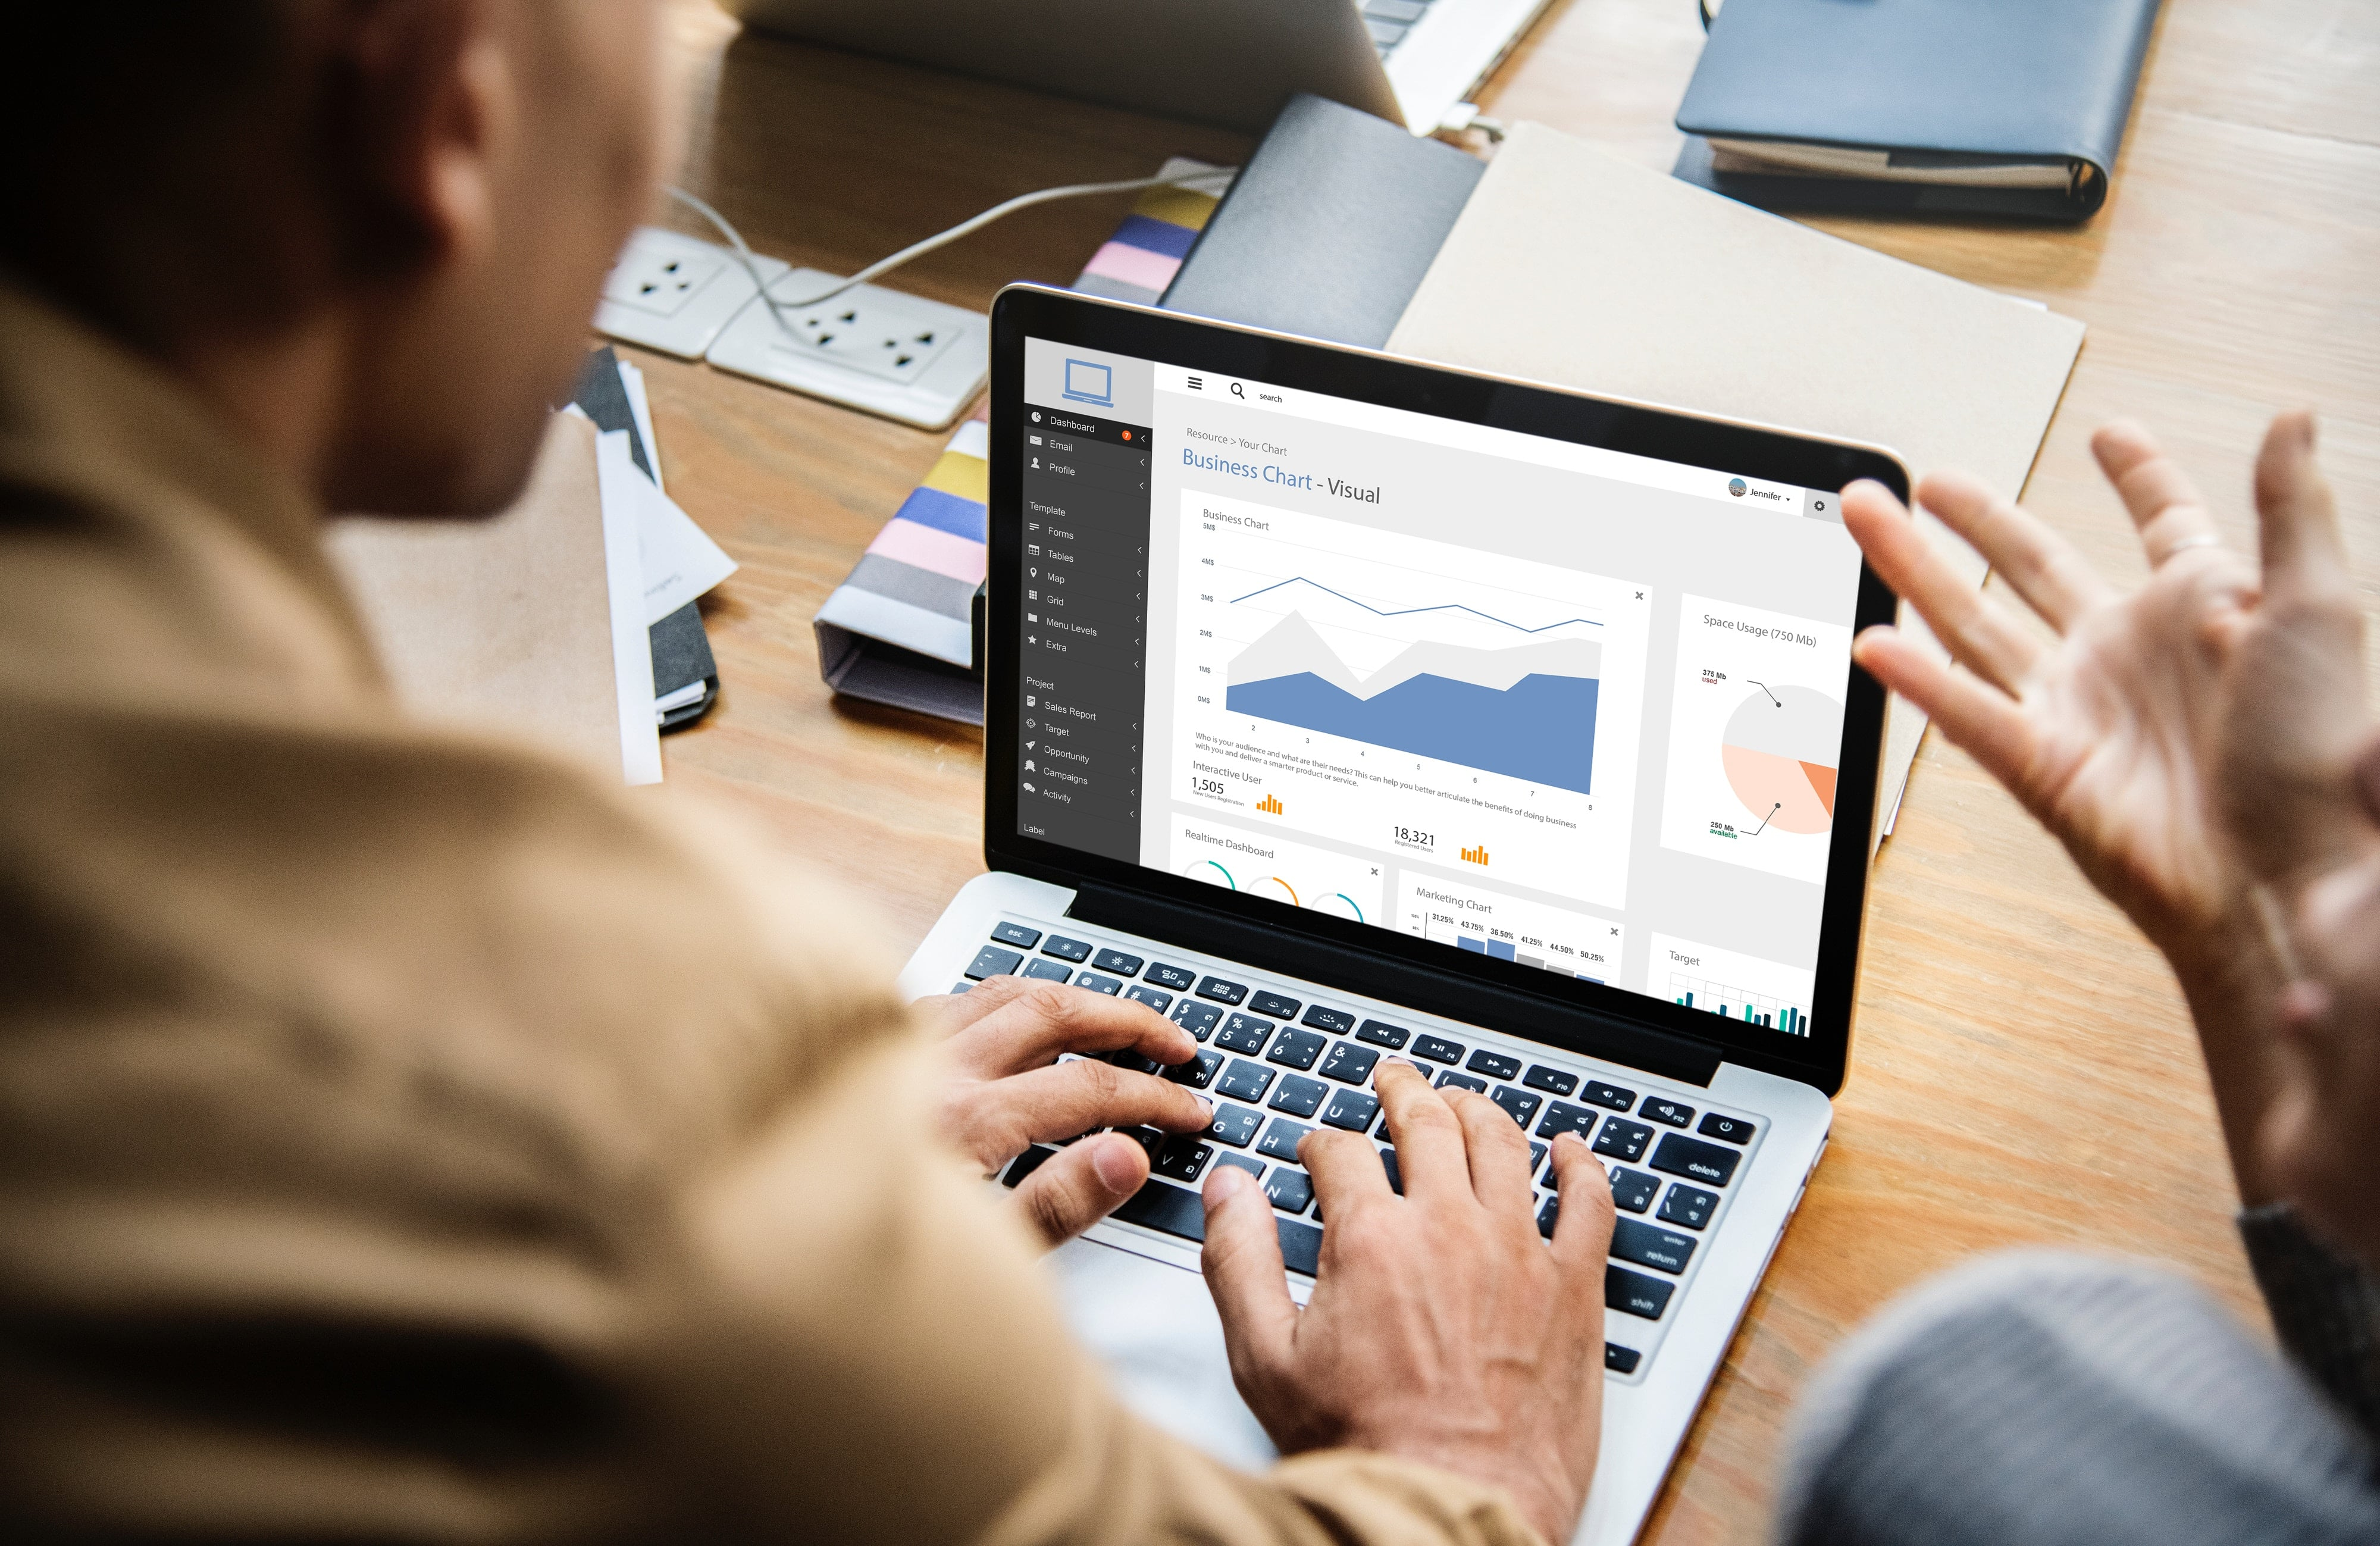 Microsoft Office 365 Services